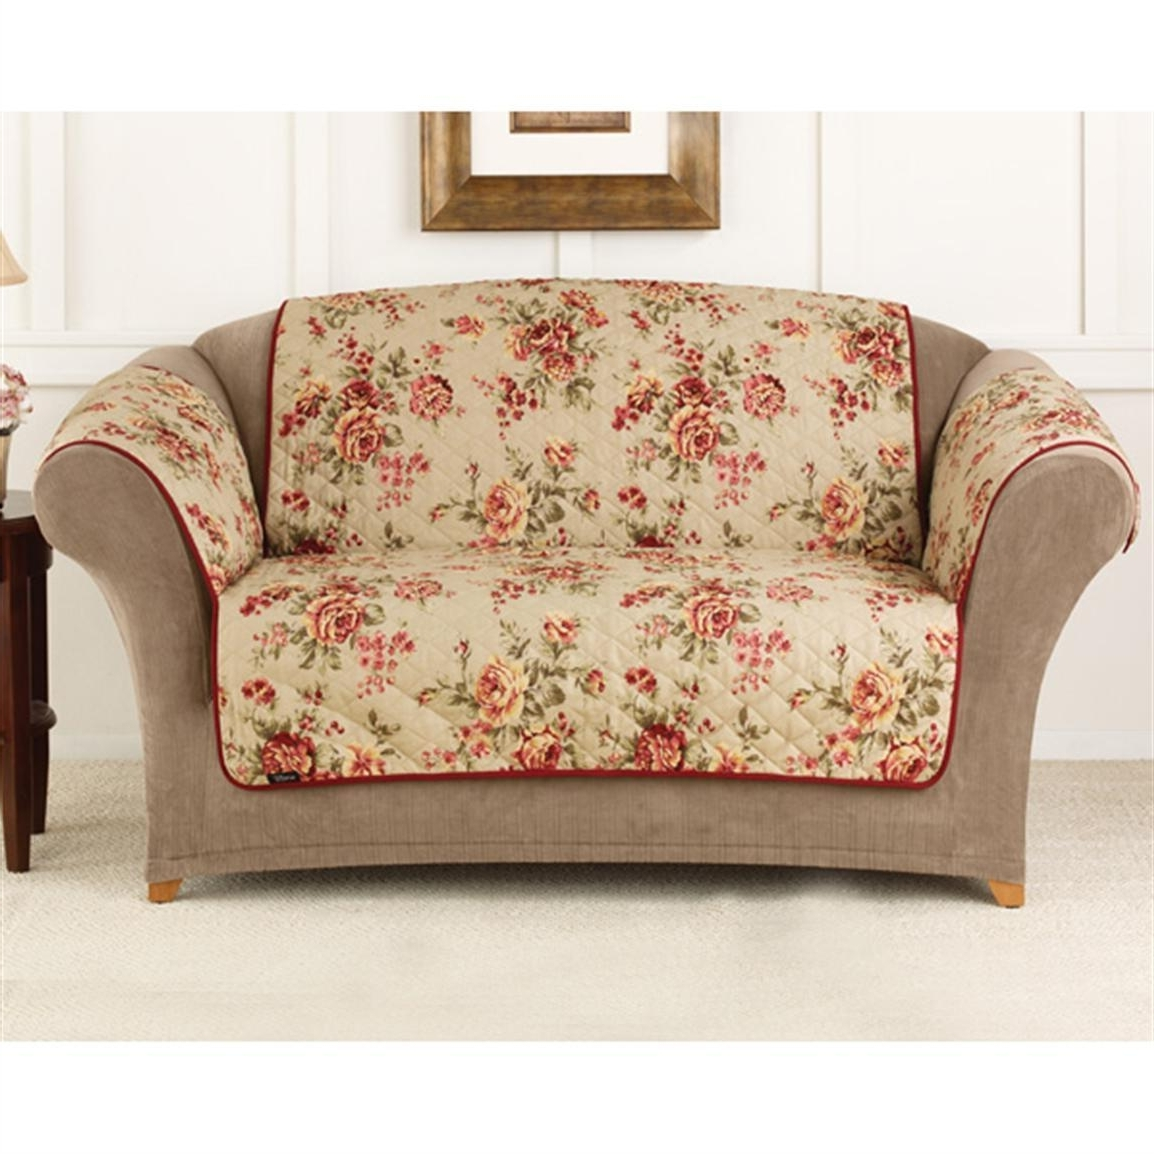 Recent Chintz Covered Sofas Pertaining To Furniture : Covers For Sofas And Couch Sure Fit Lexington Floral (View 4 of 20)